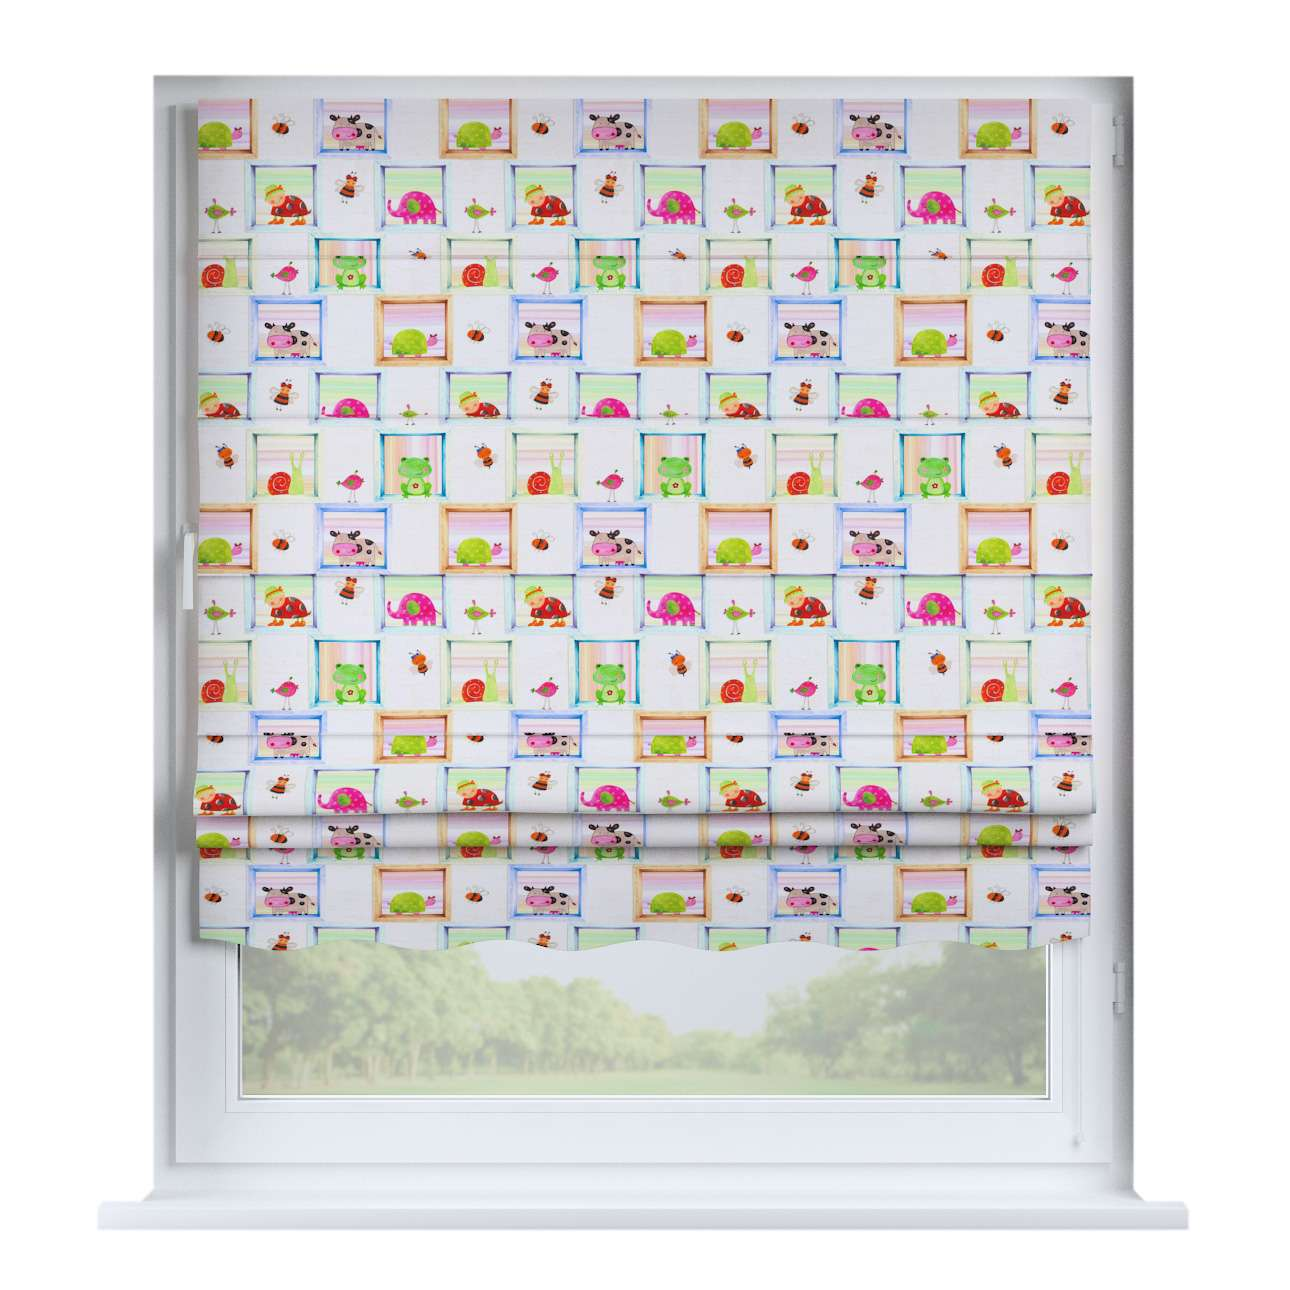 Florence roman blind  80 x 170 cm (31.5 x 67 inch) in collection Apanona, fabric: 151-04